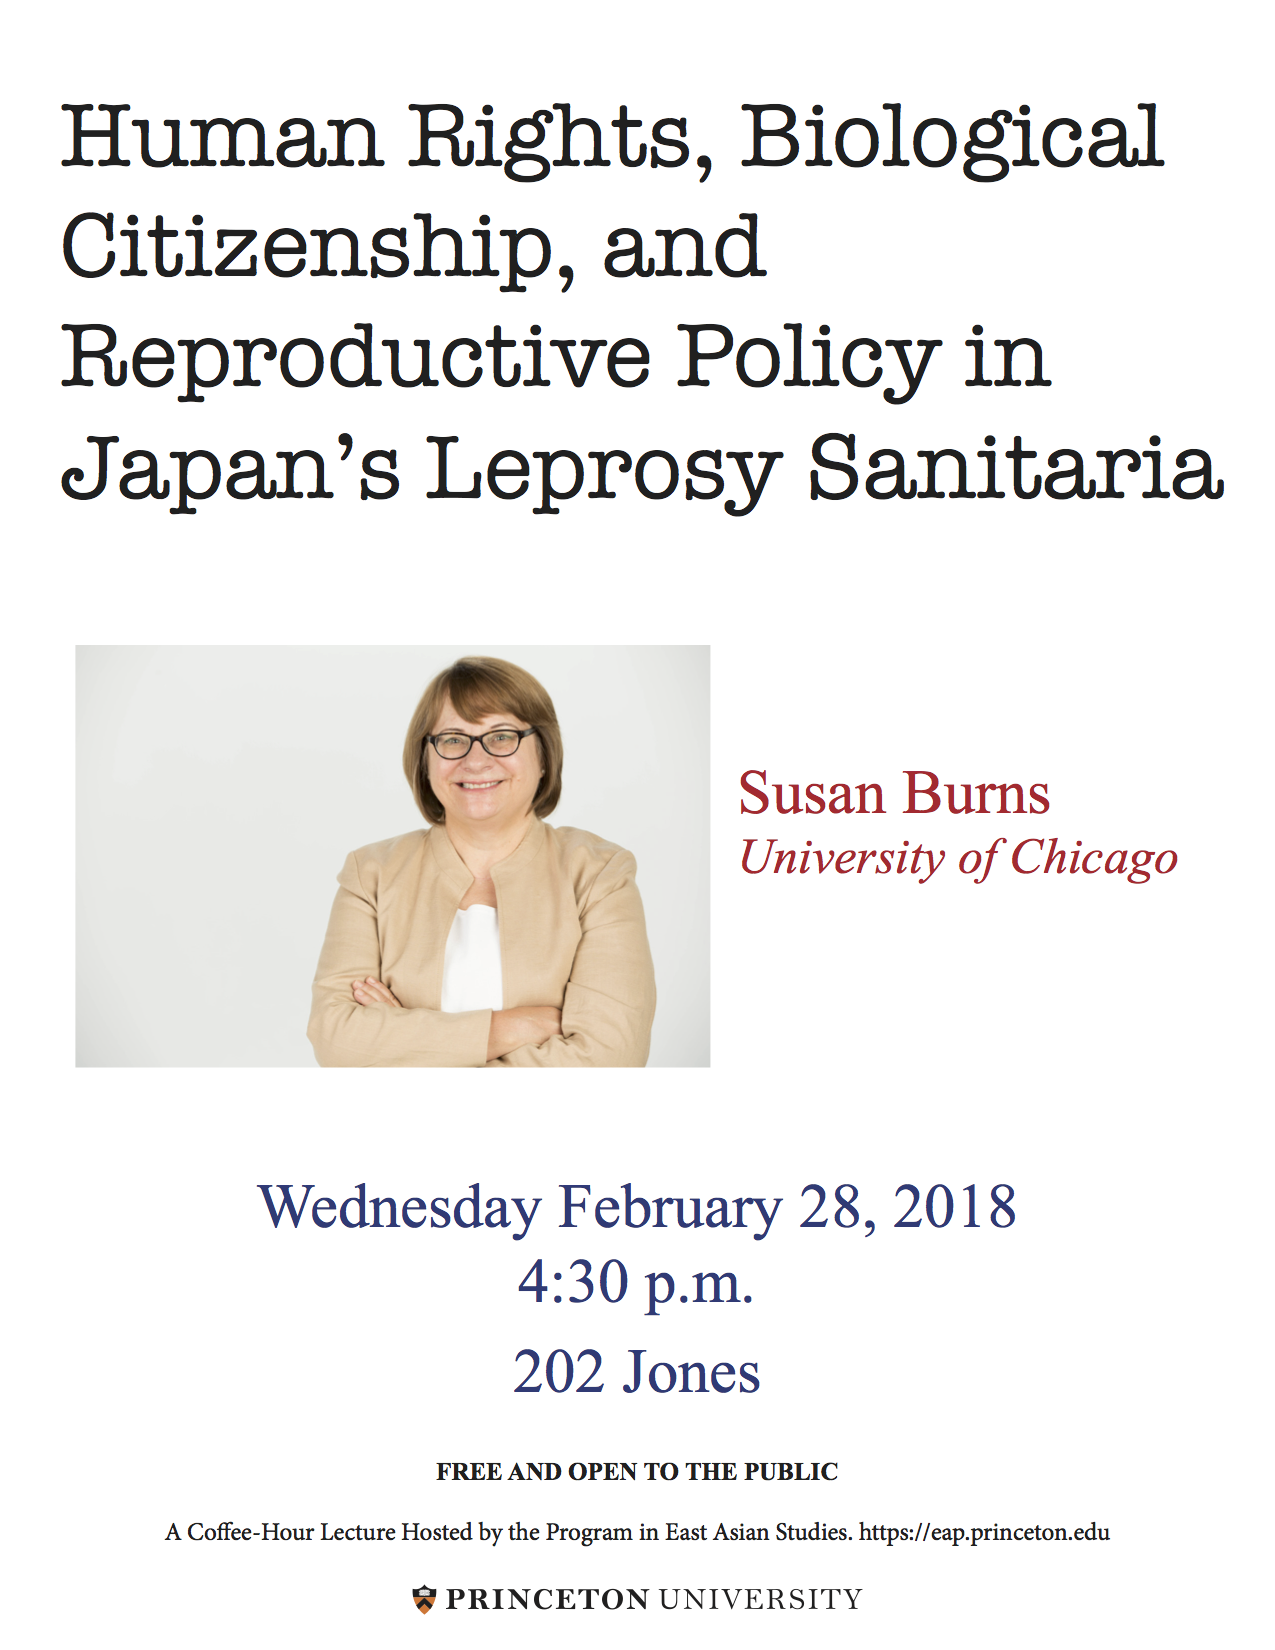 Poster for Human Rights, Biological Citizen, and Reproductive Policy in Japan's Leprosy Sanitaria